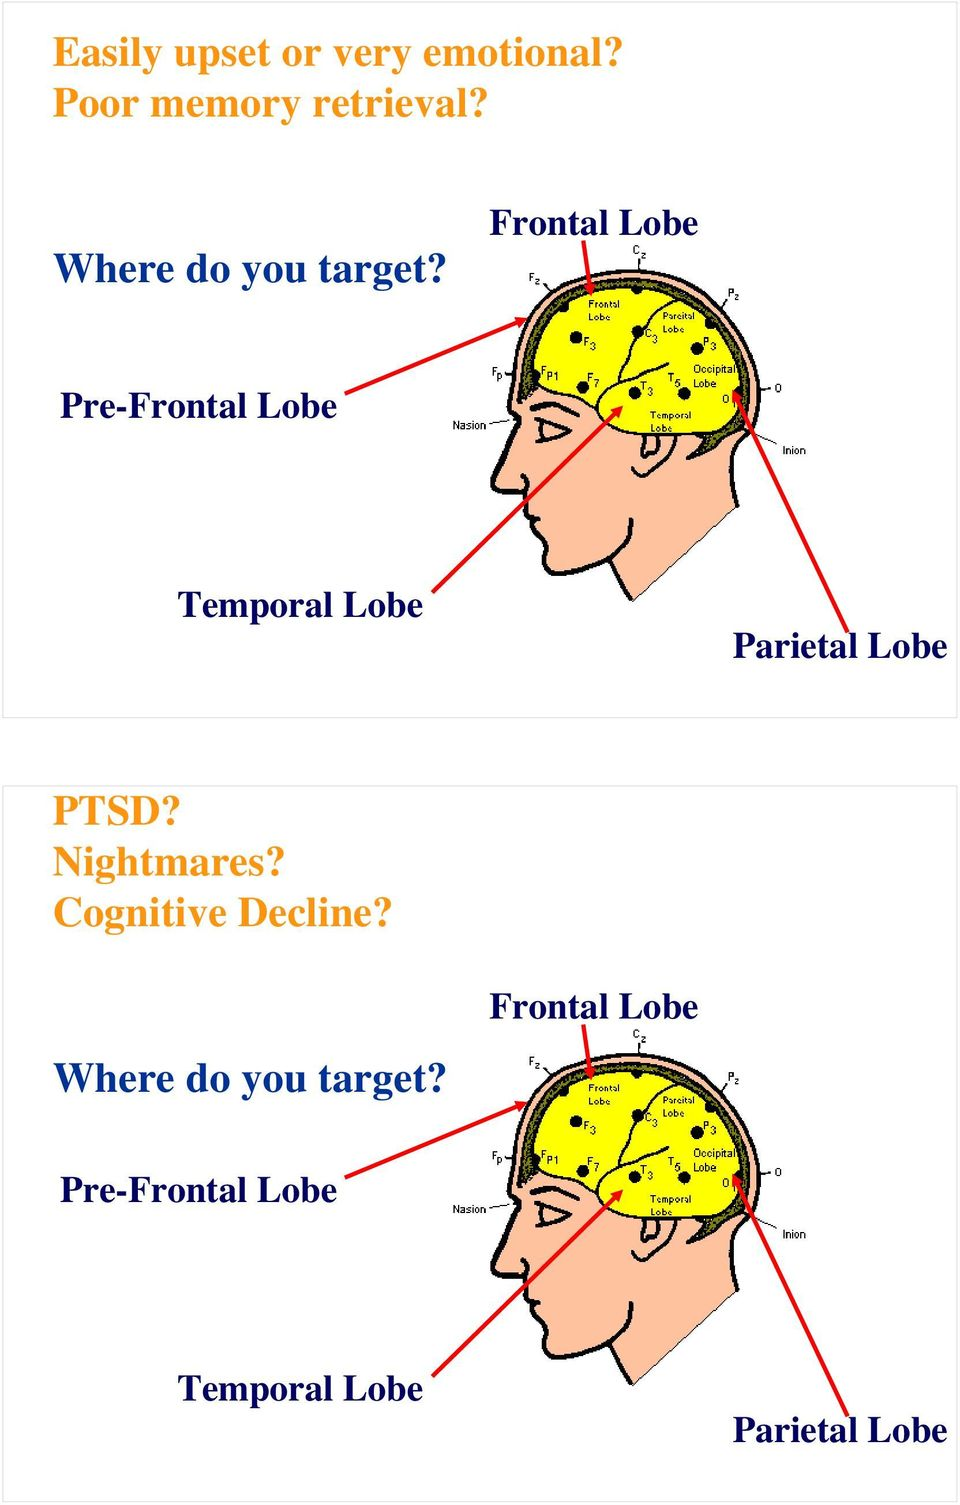 Frontal Lobe Pre-Frontal Lobe Temporal Lobe Parietal Lobe PTSD?